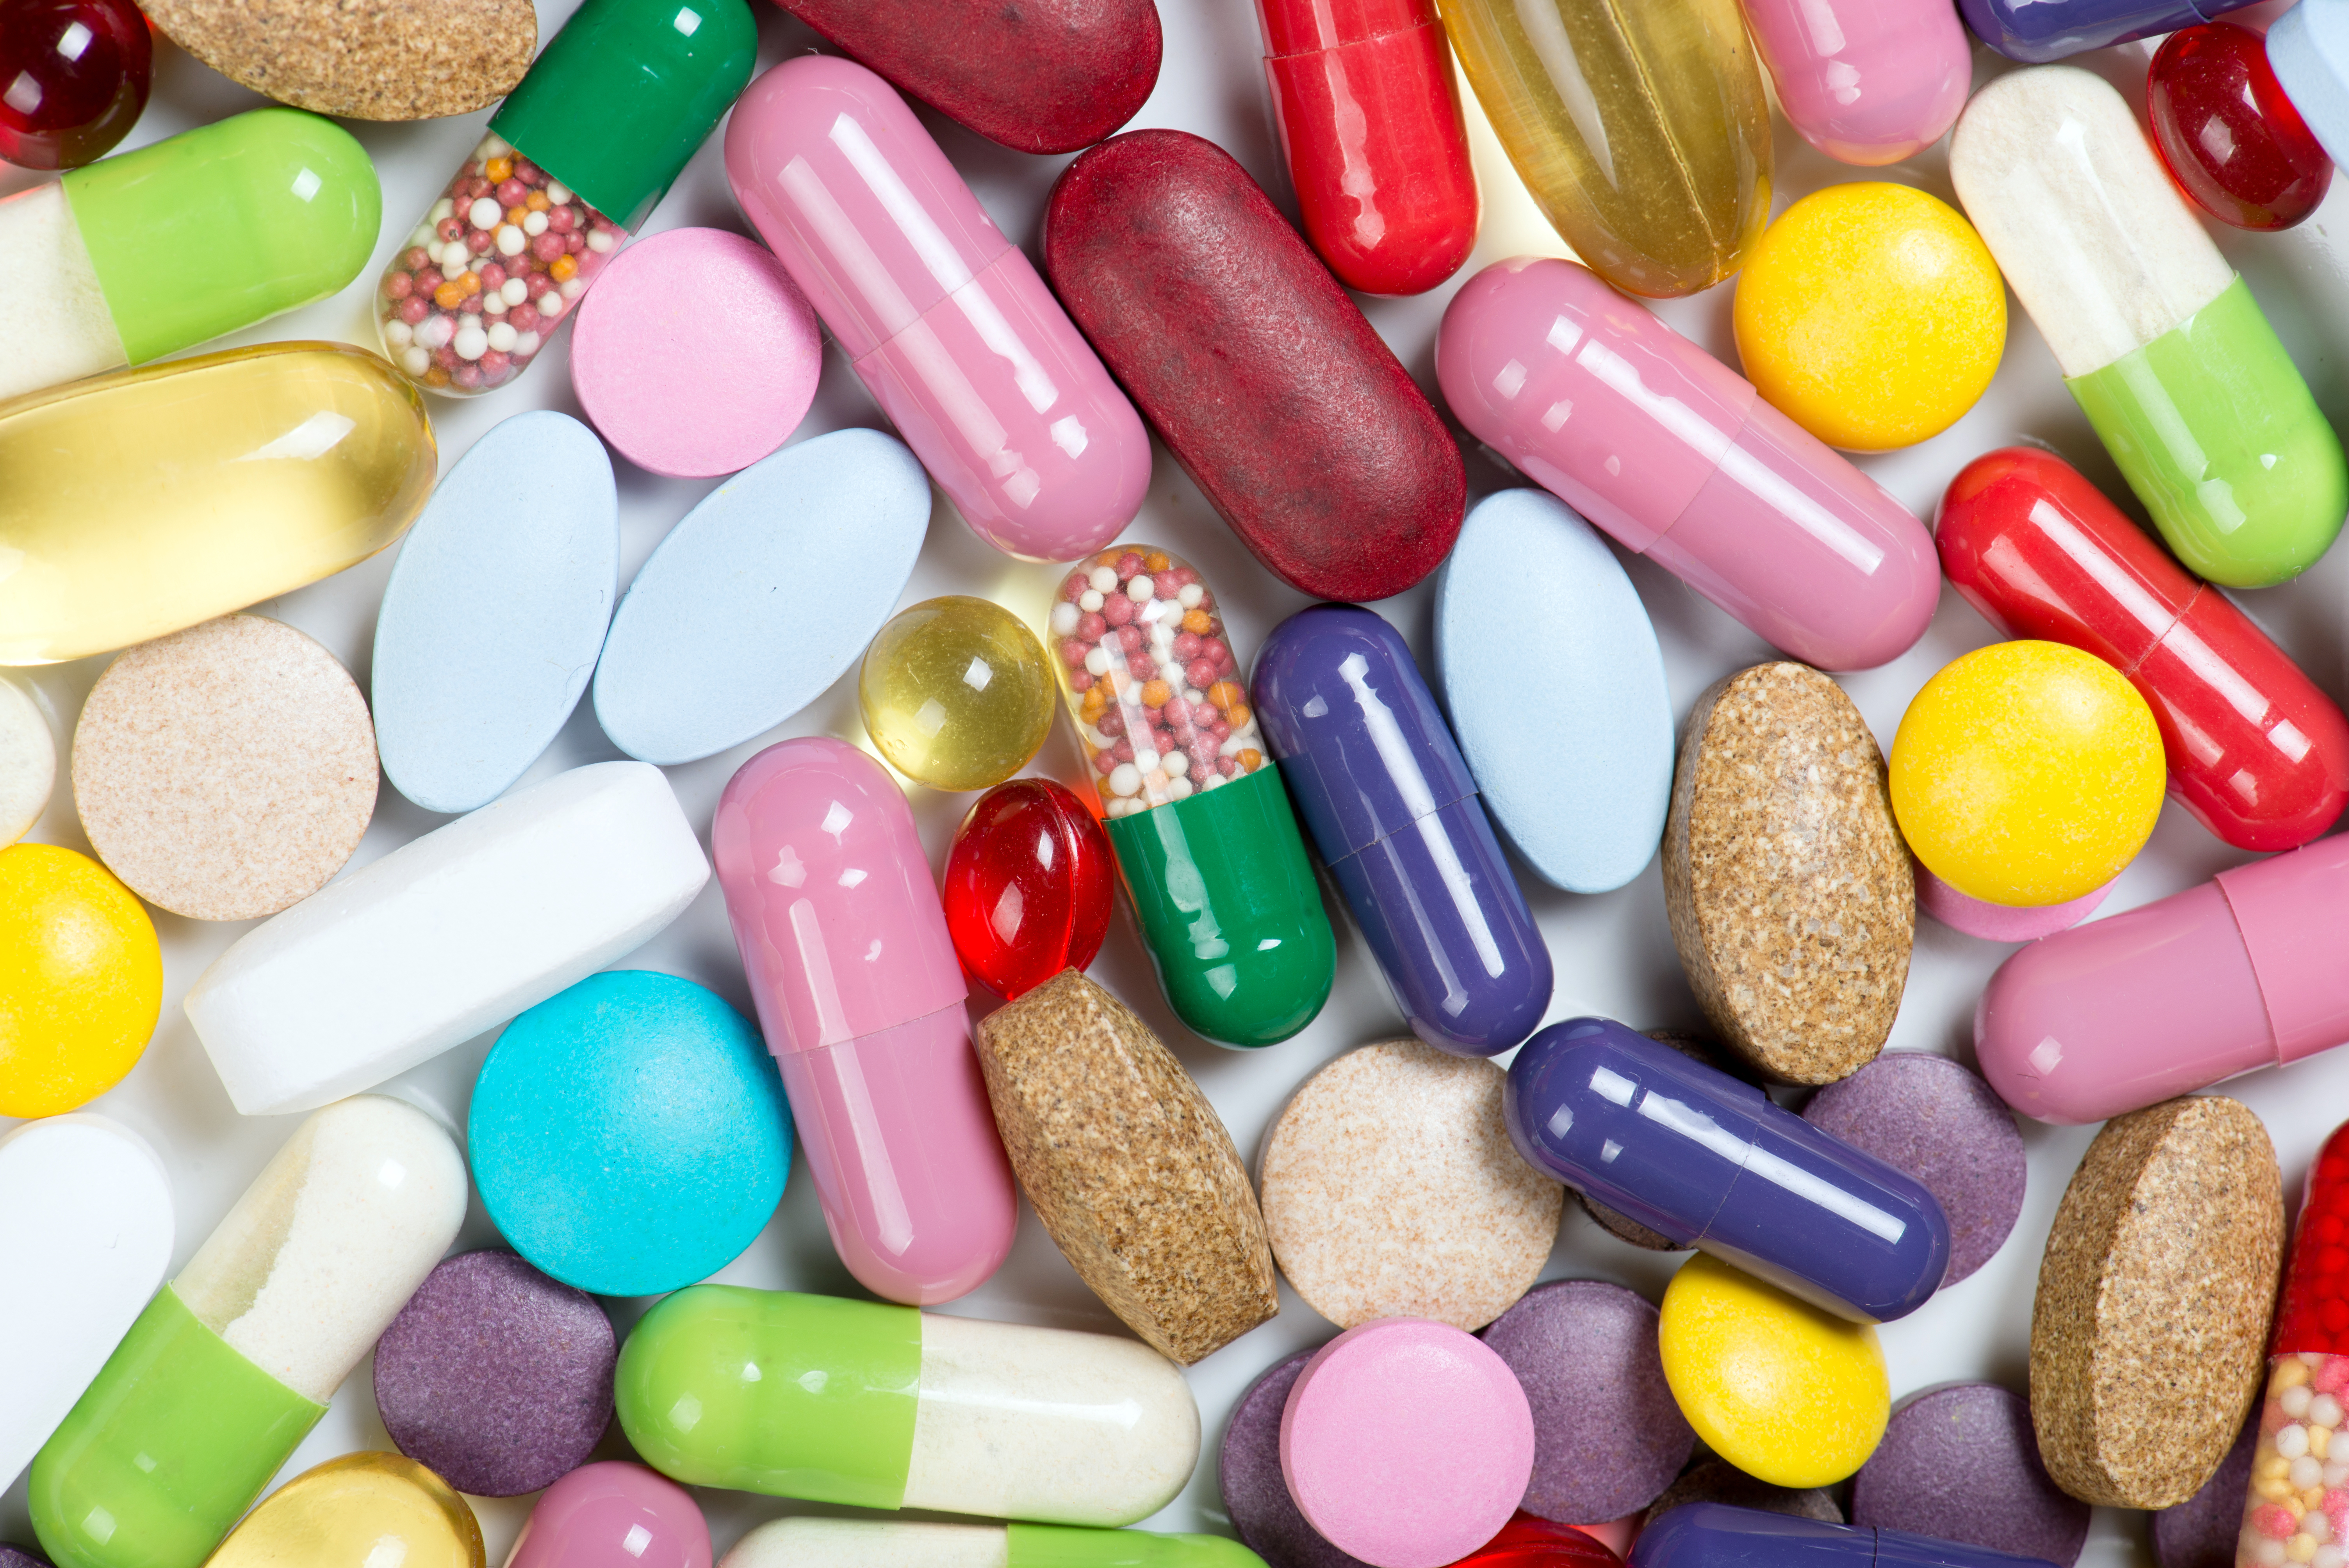 Pharma_Coloured Tablets_High Res